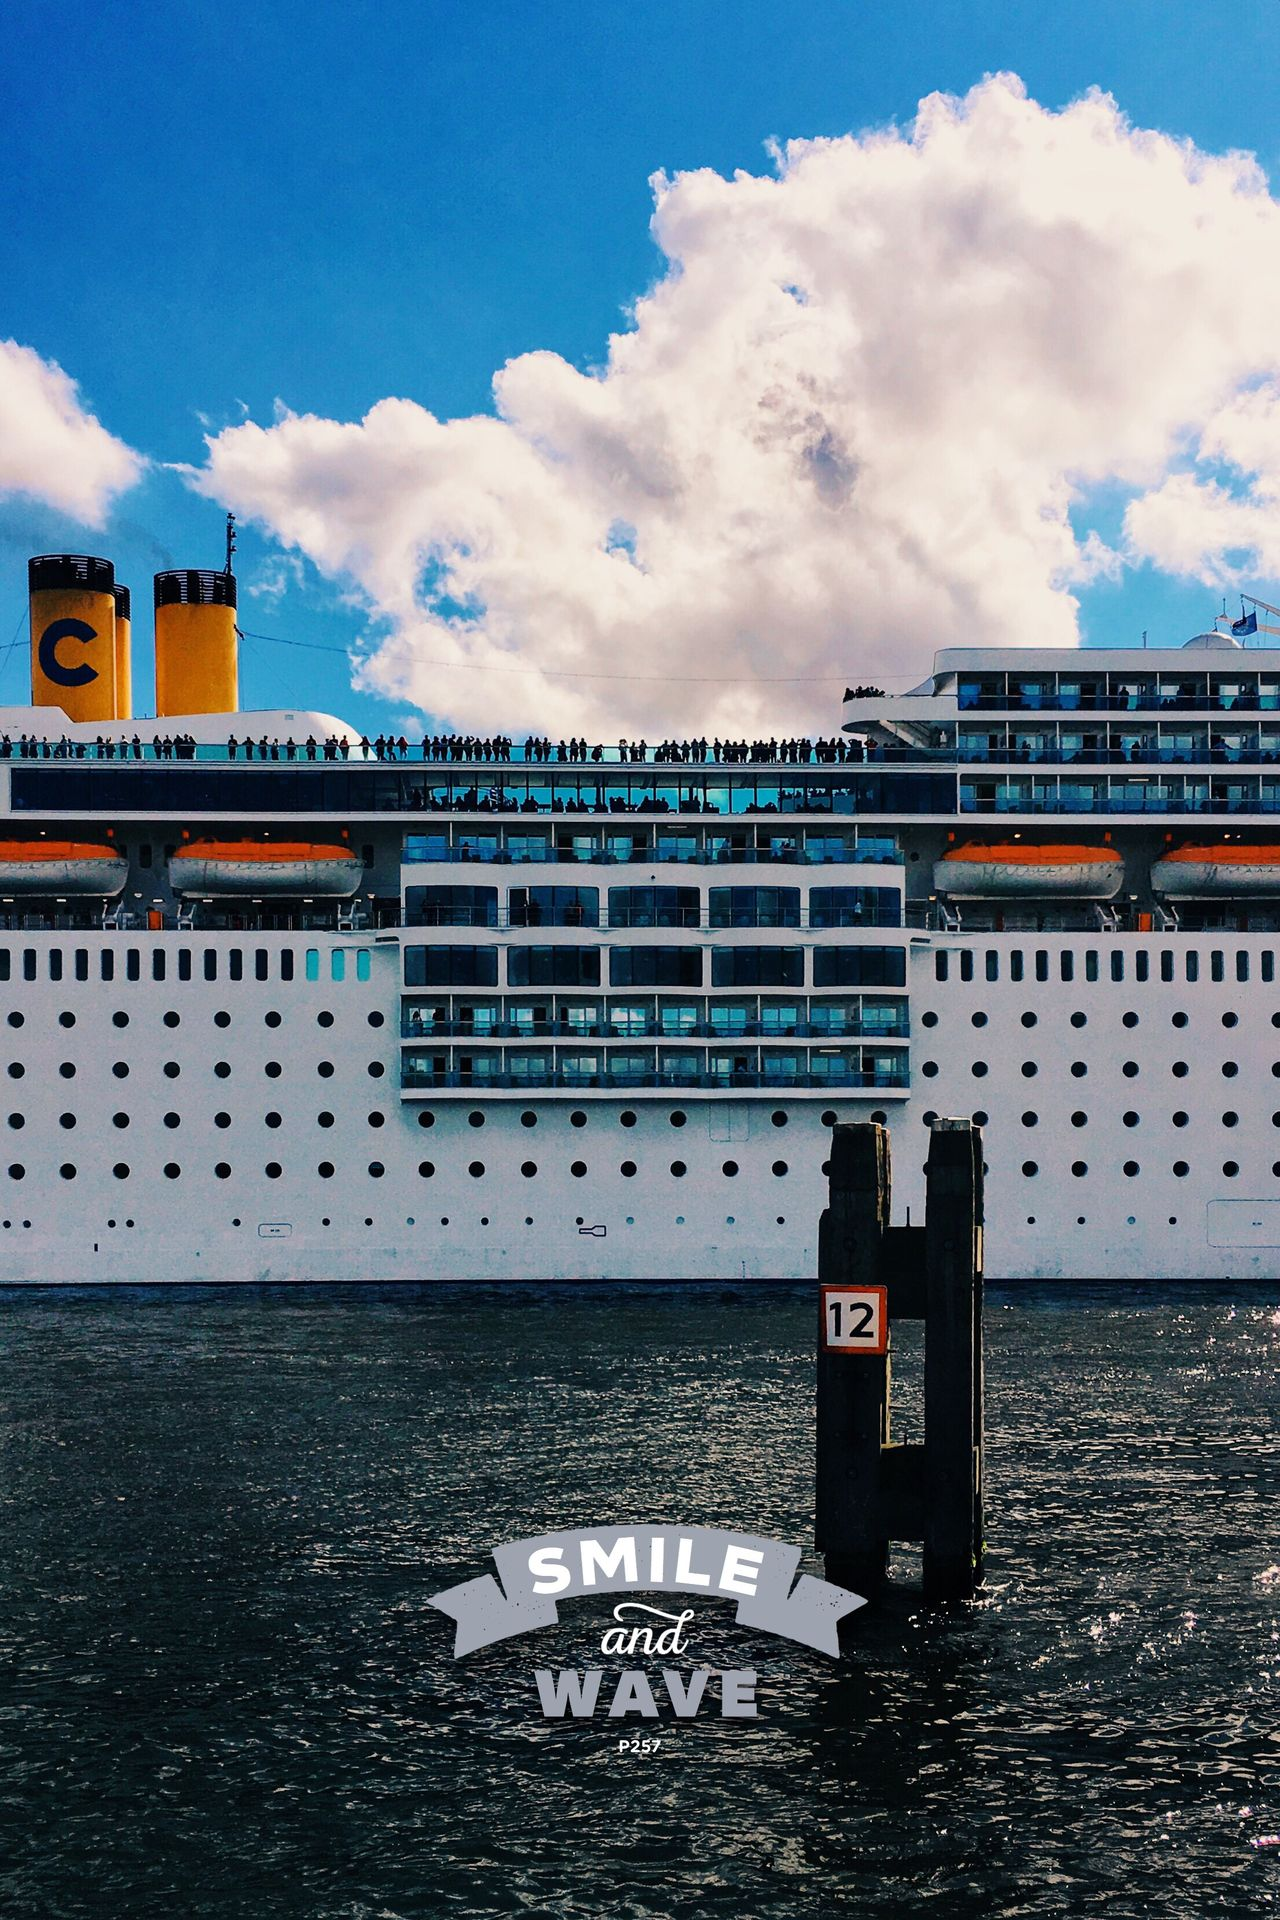 Just smile and wave boys... Smile and wave. P257 Onephotoaday IPhoneography 365project2016 Amsterdam Outdoors Blue Sky Dutch Skies Cruise Cruise Ship River Riverside Departure Departing People People Watching Ship Huge Typography Just Smile And Wave Clouds And Sky Manmade